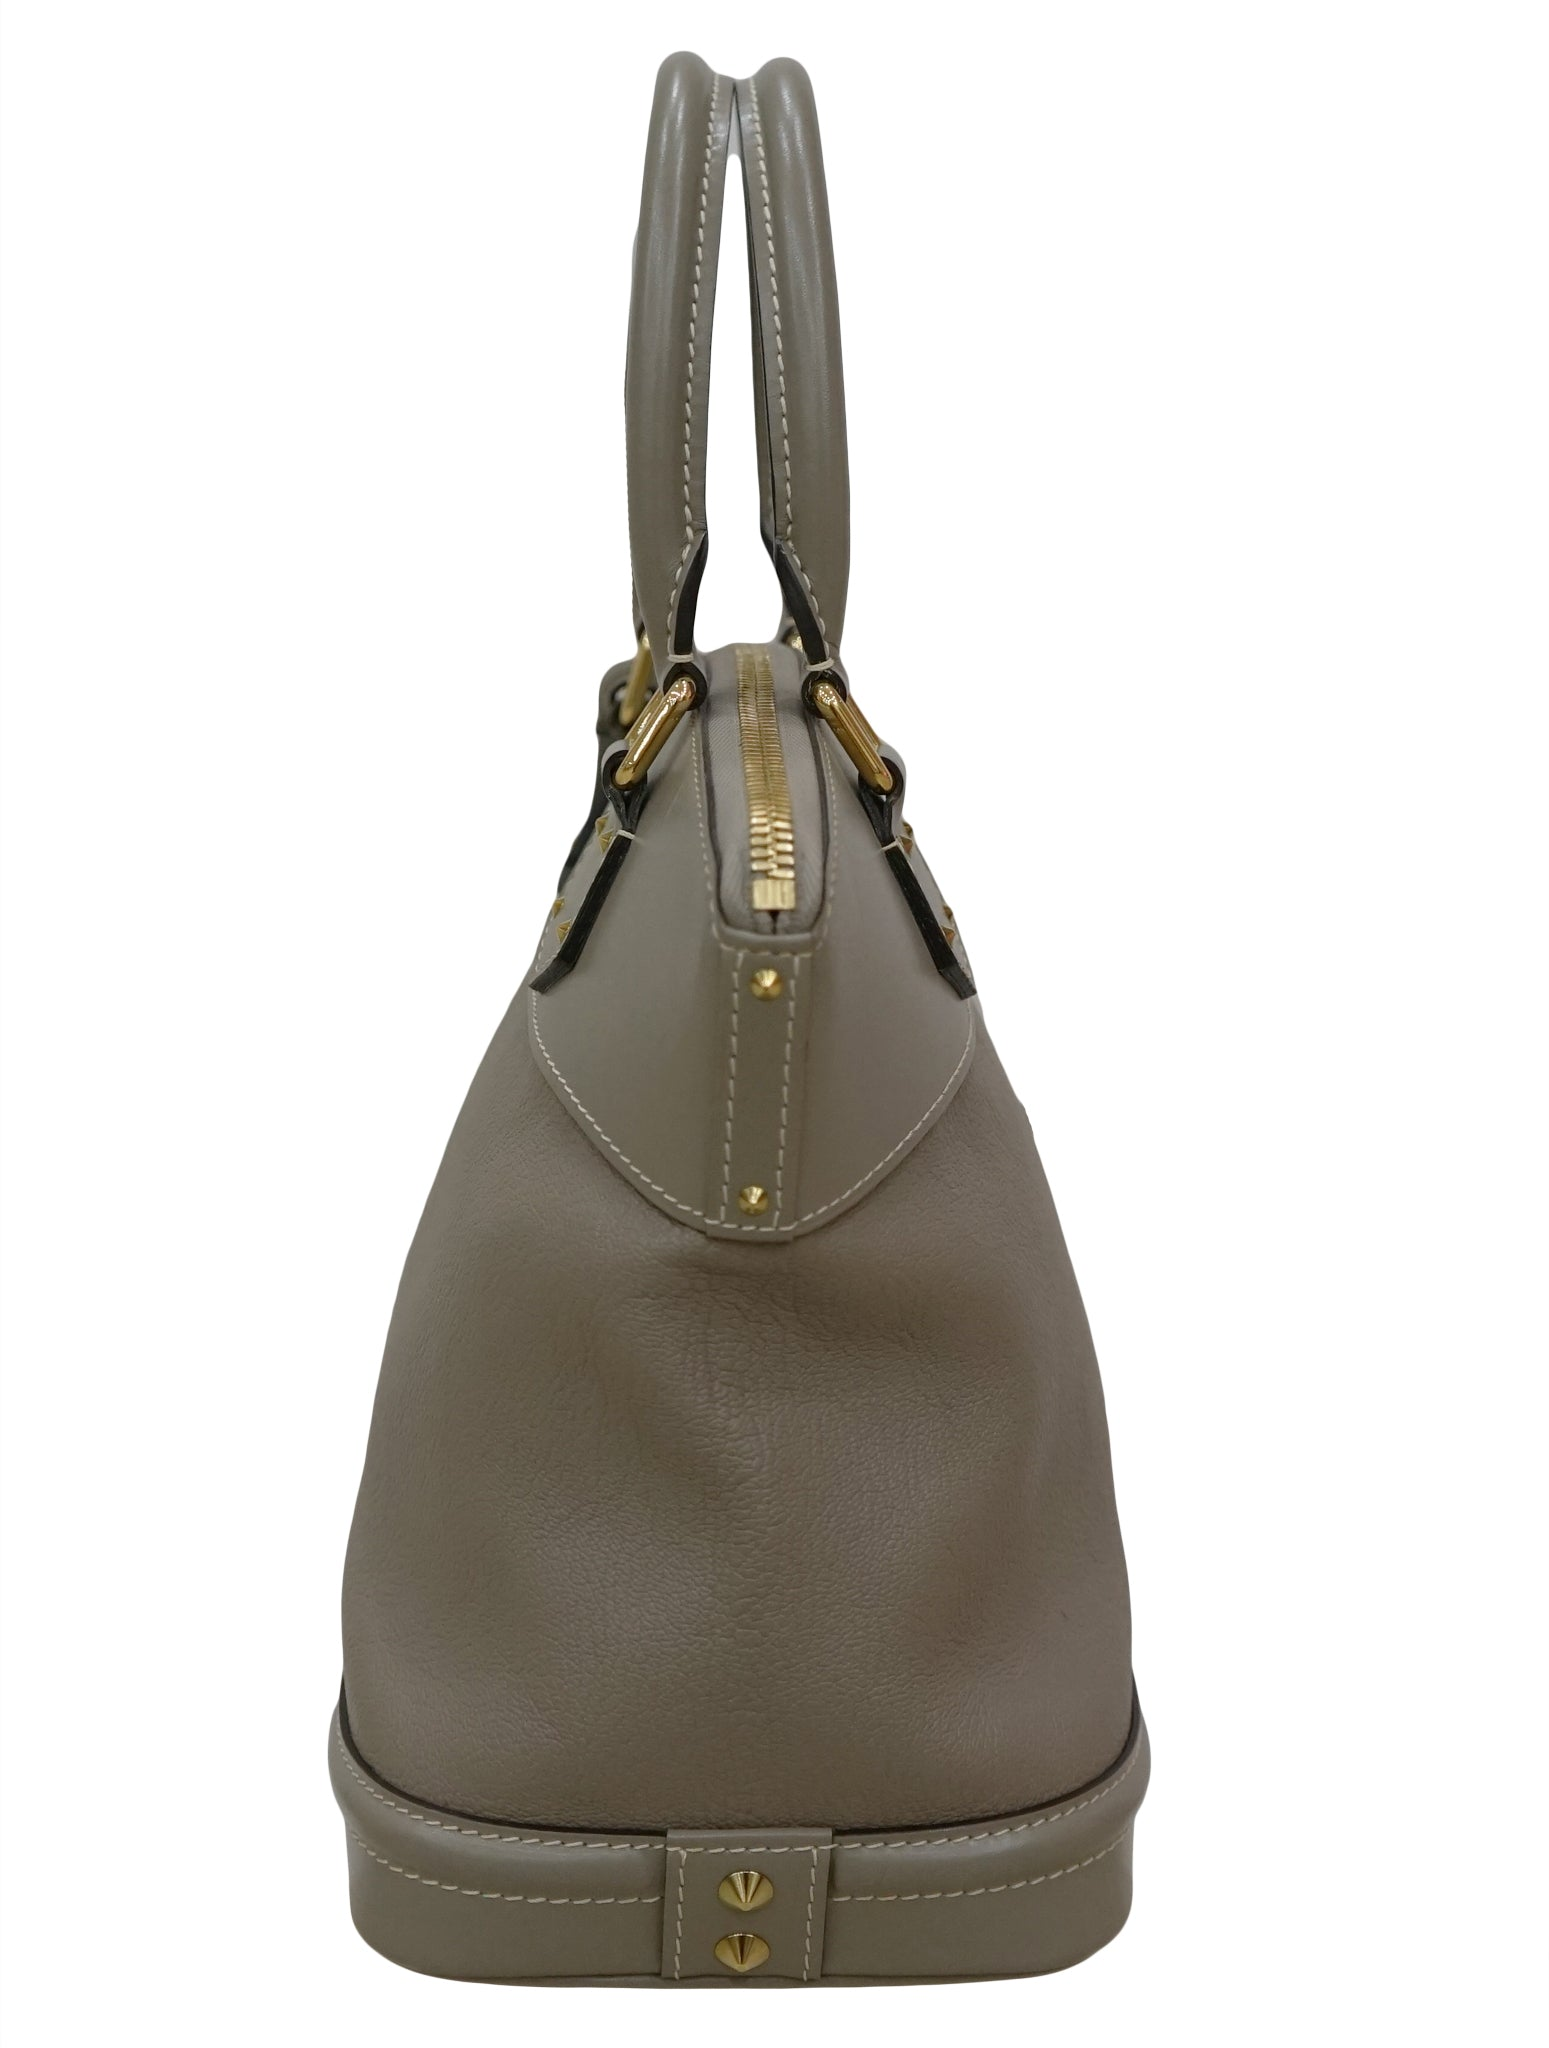 GRAY SUHALI LEATHER LOCKIT PM BAG